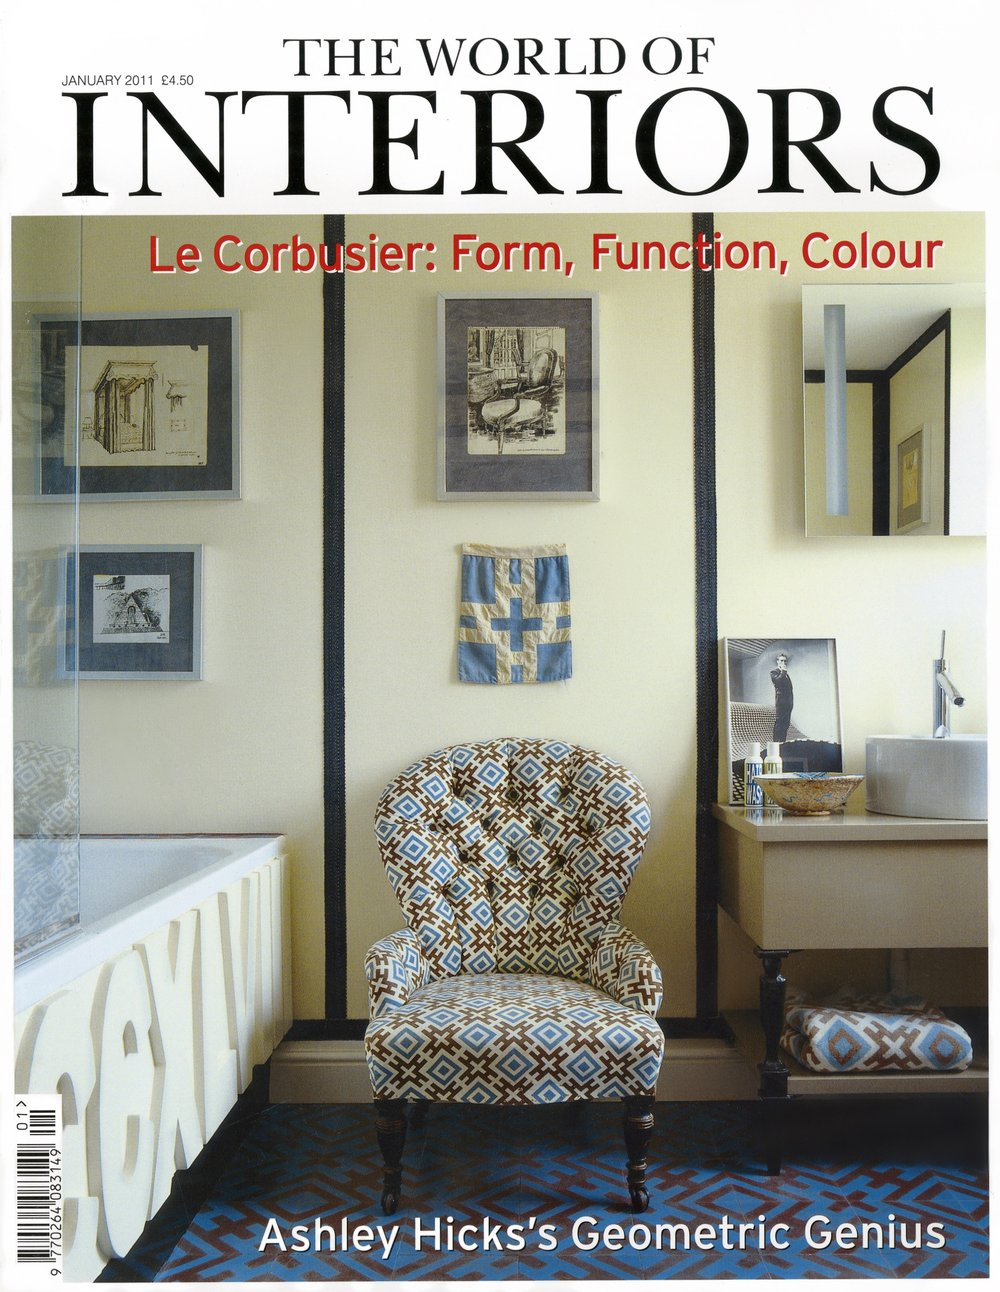 THE WORLD OF INTERIORS January 2011 - United Kingdom